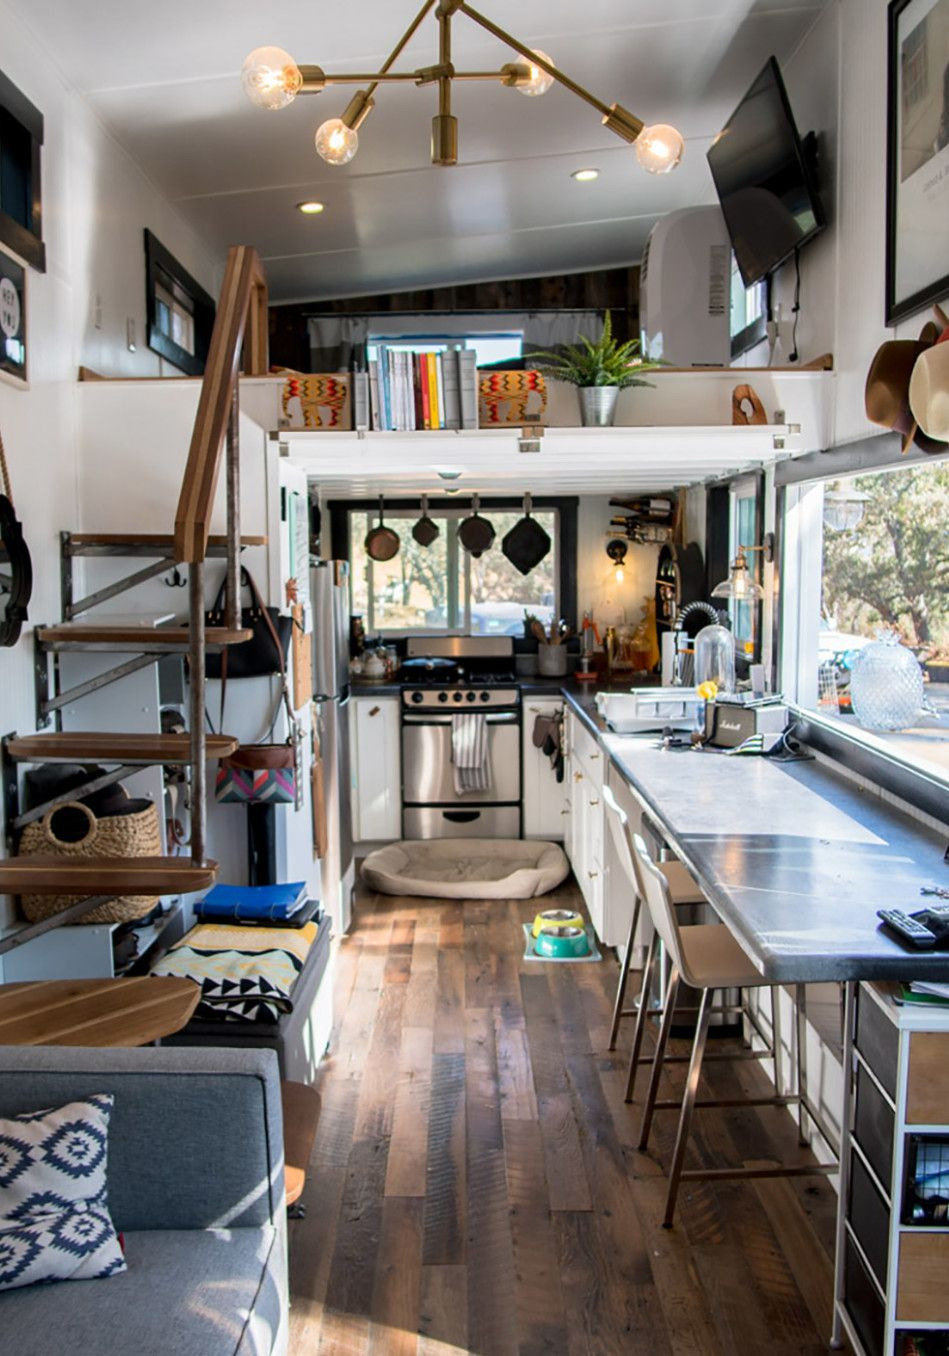 11 Storage Tricks To Steal From People Who Live In Tiny Homes Tiny House Interior Tiny House Storage Tiny House Organization